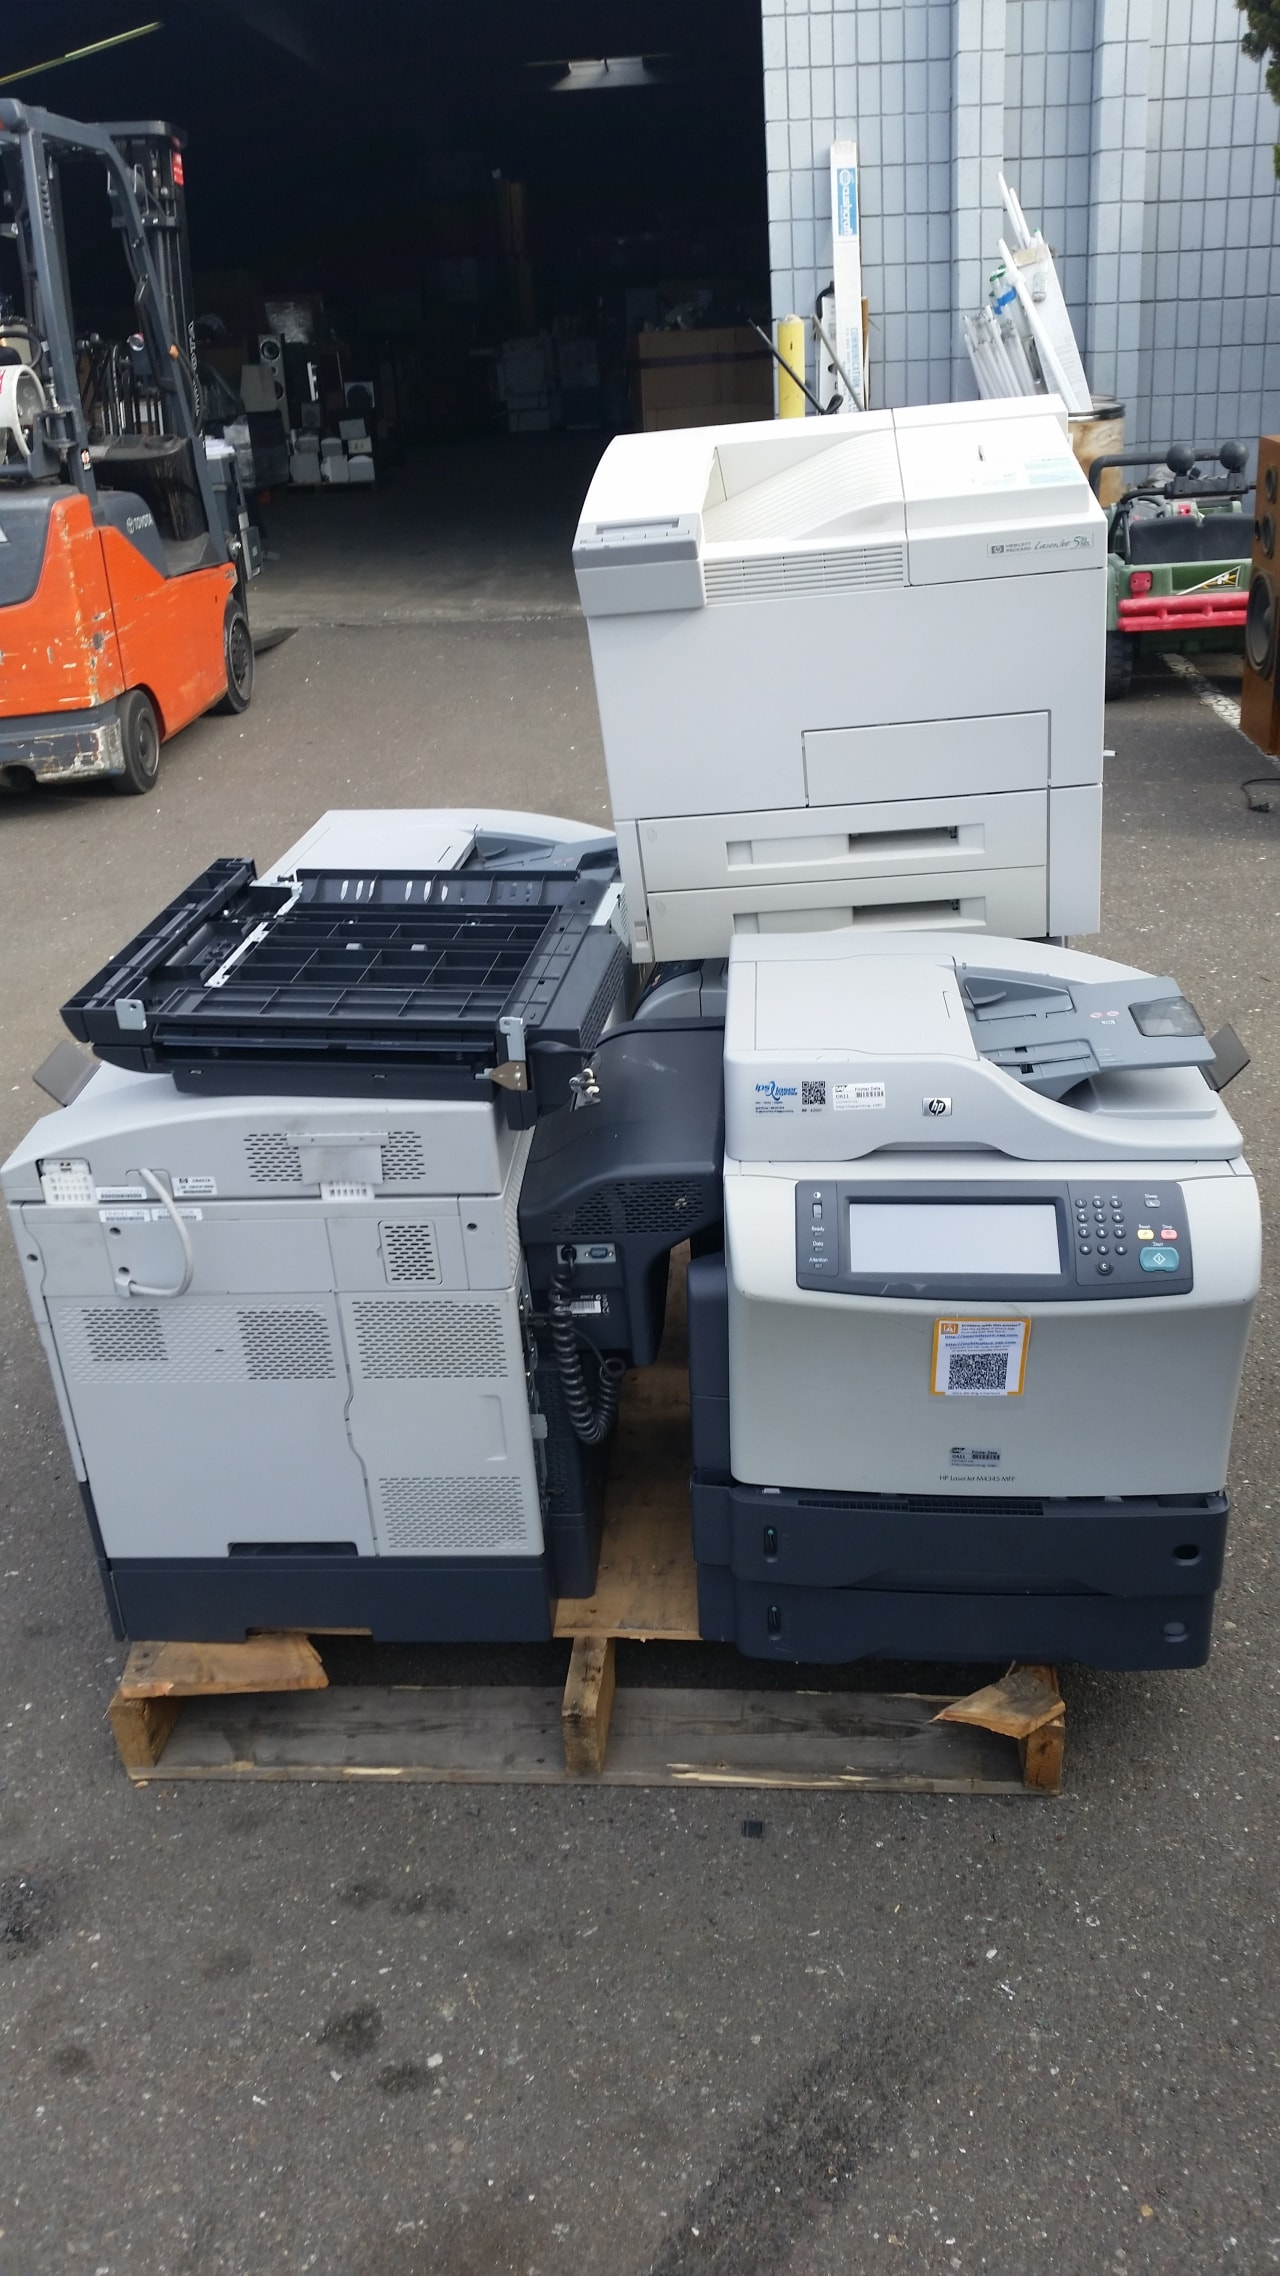 Commercial e-waste pickup, hauling, recycling